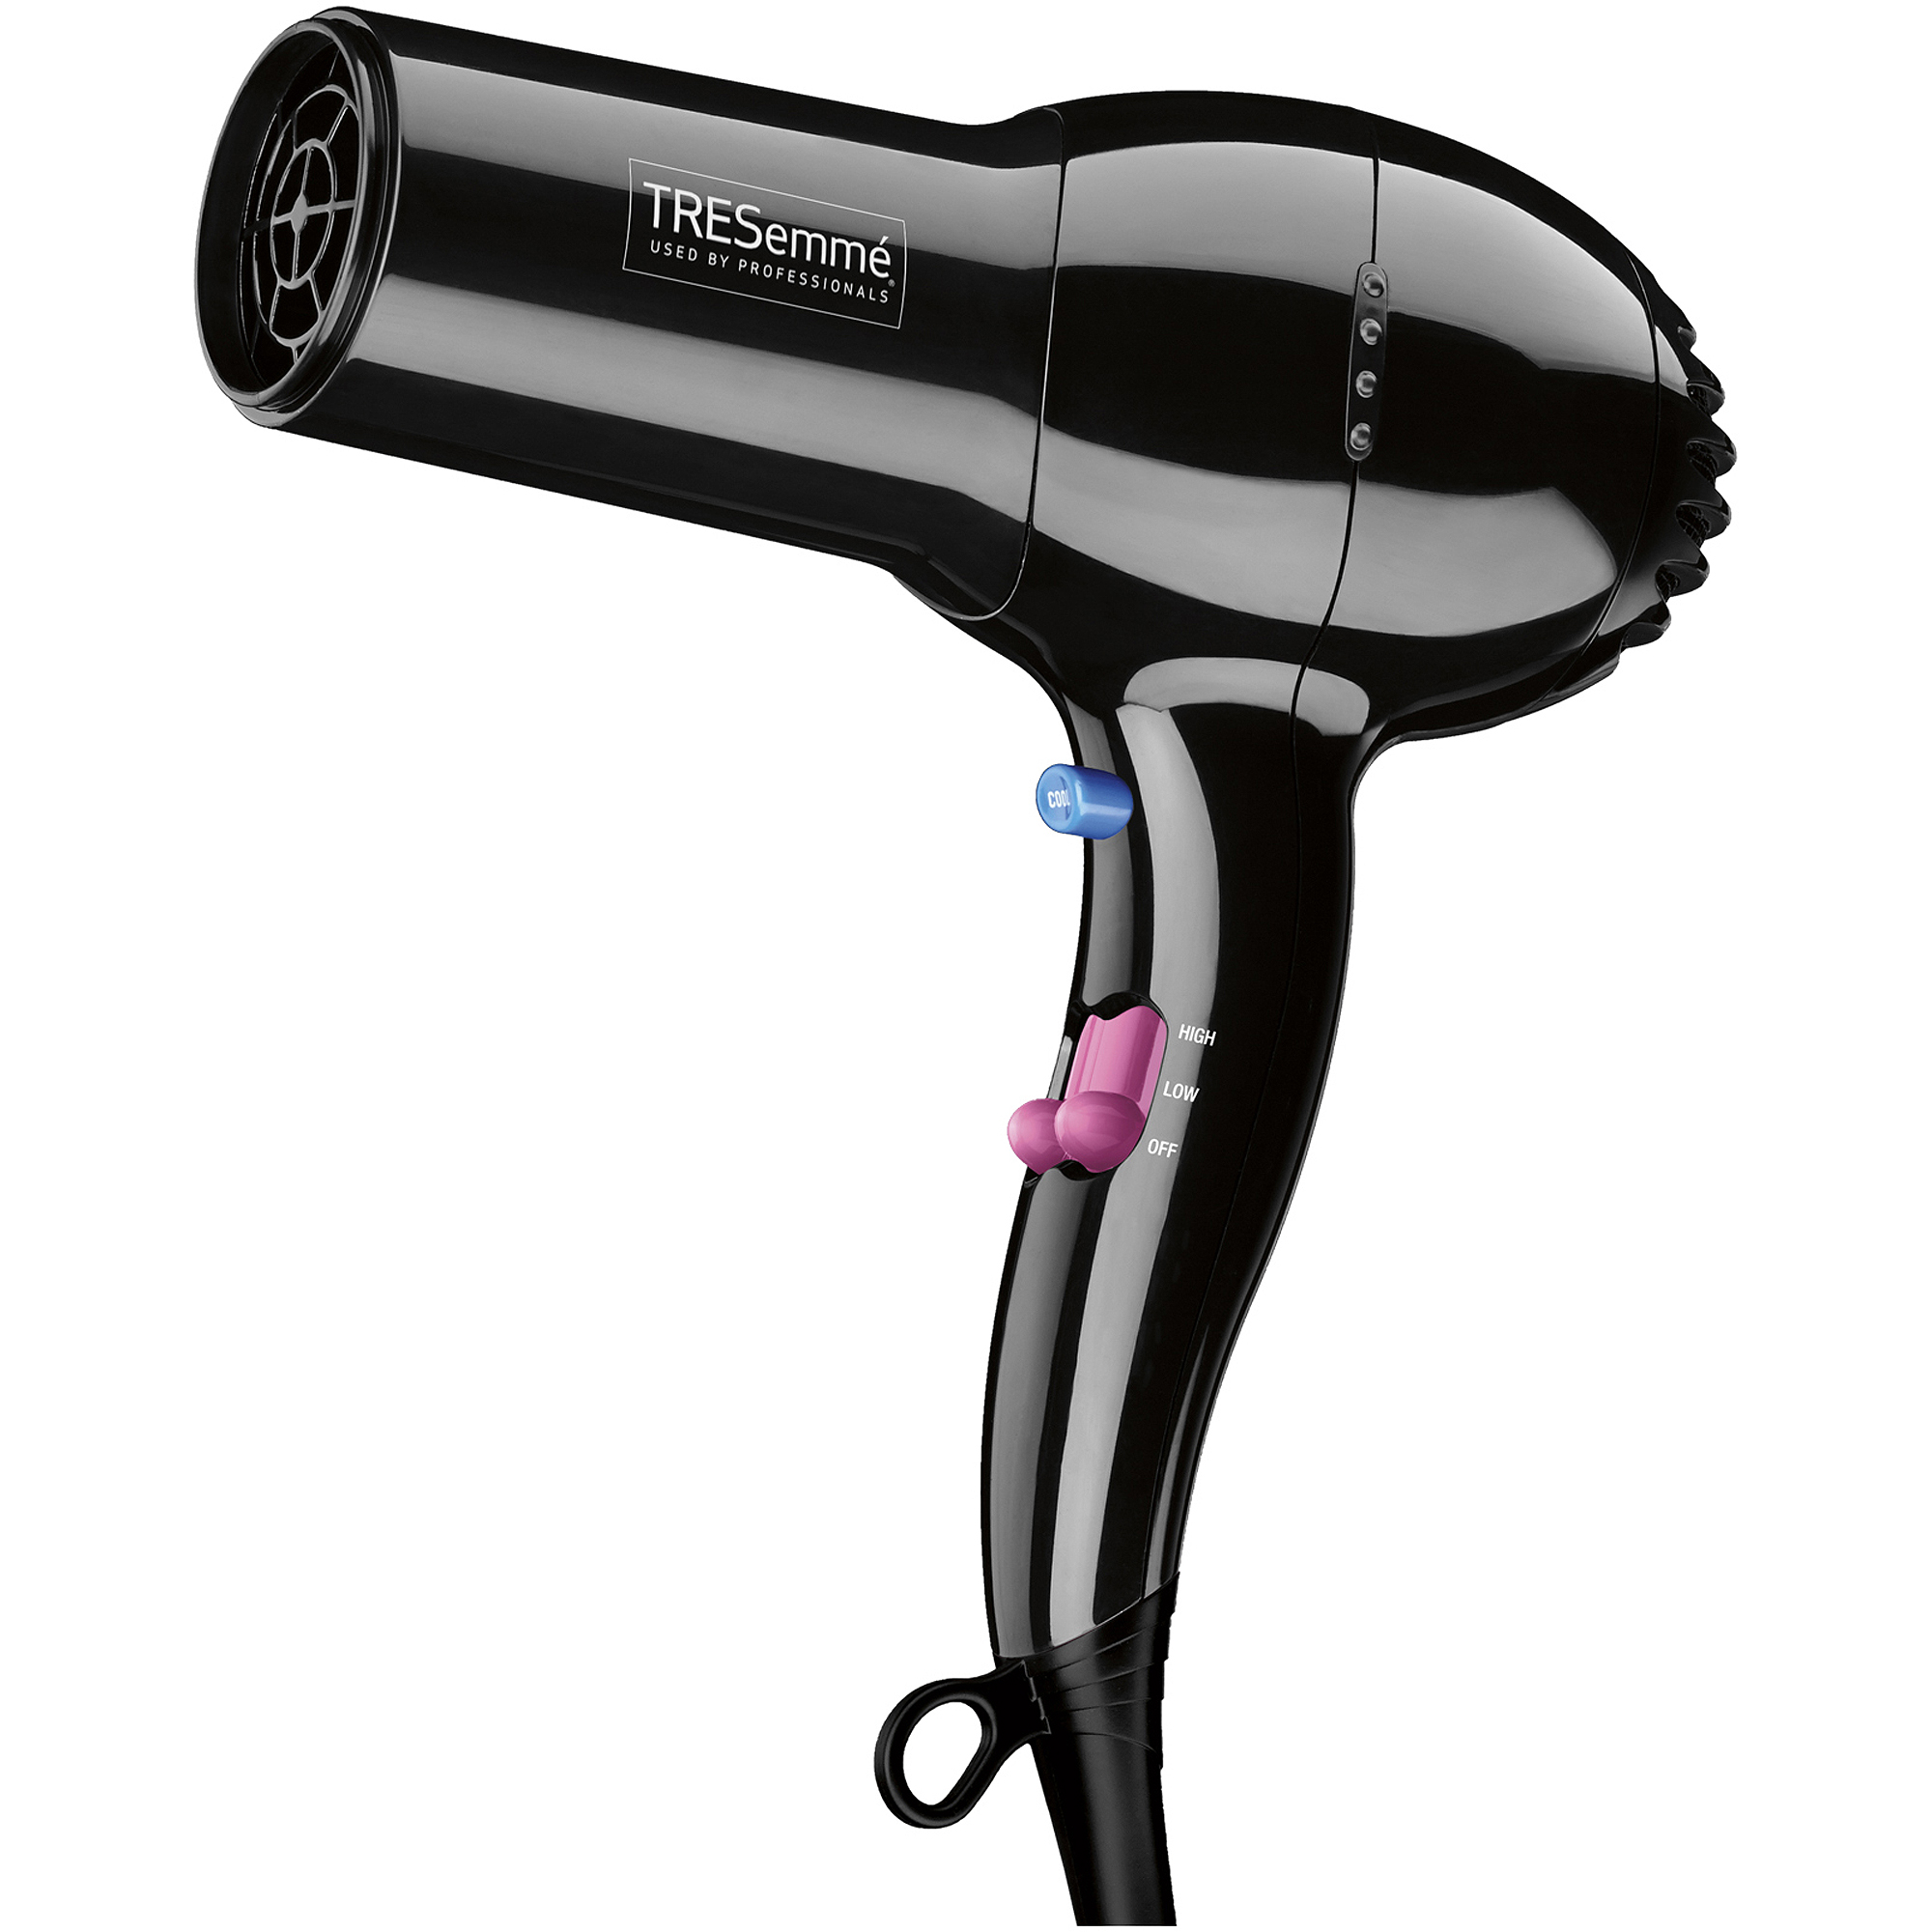 TRESemme Volume Hair Dryer